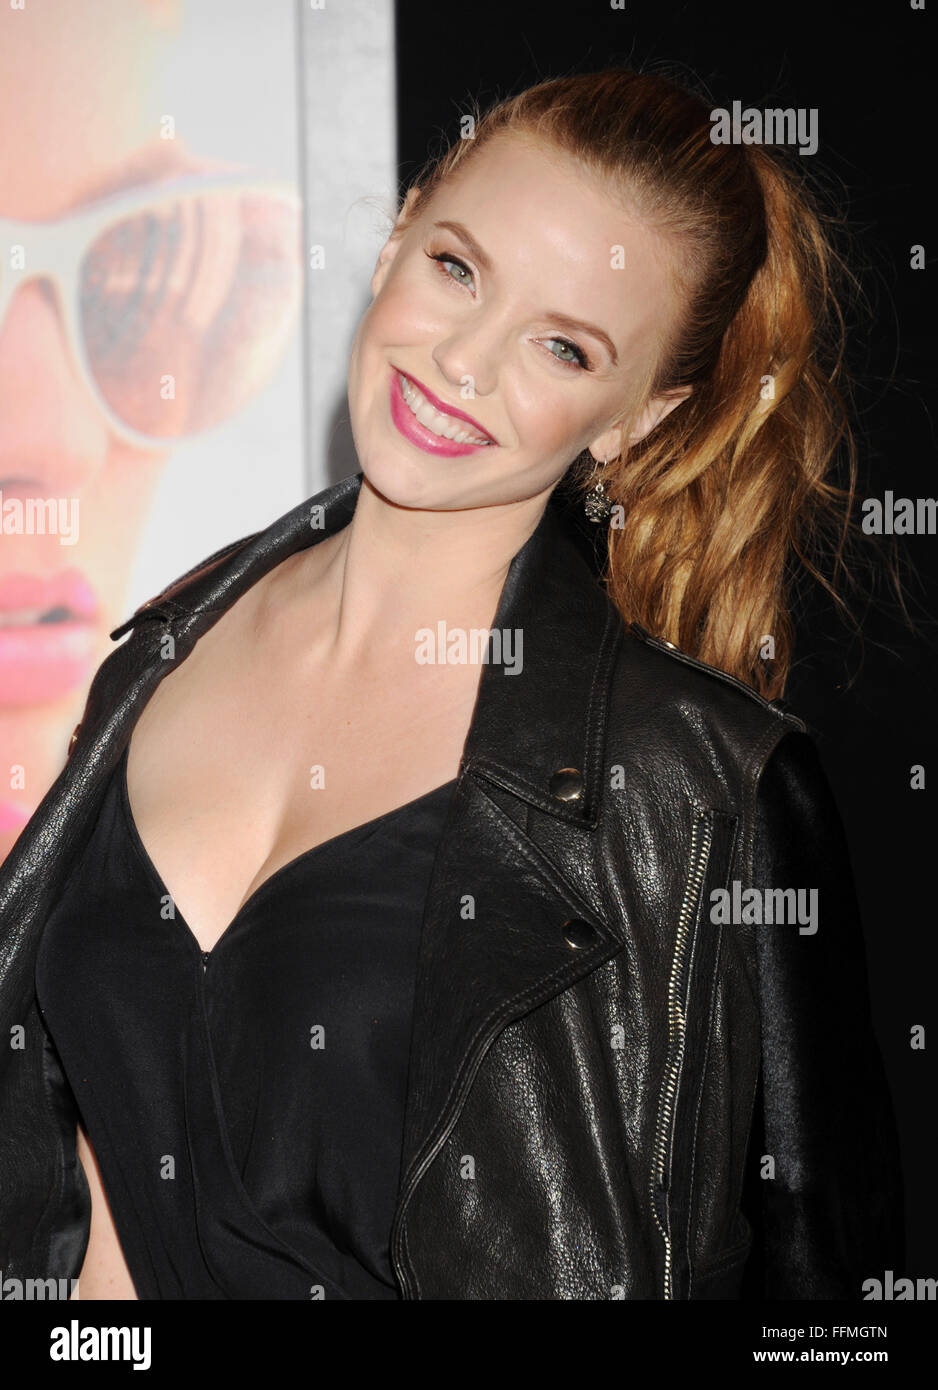 Actress Kelli Garner Attends The Warner Bros Pictures Focus Premiere At Tcl